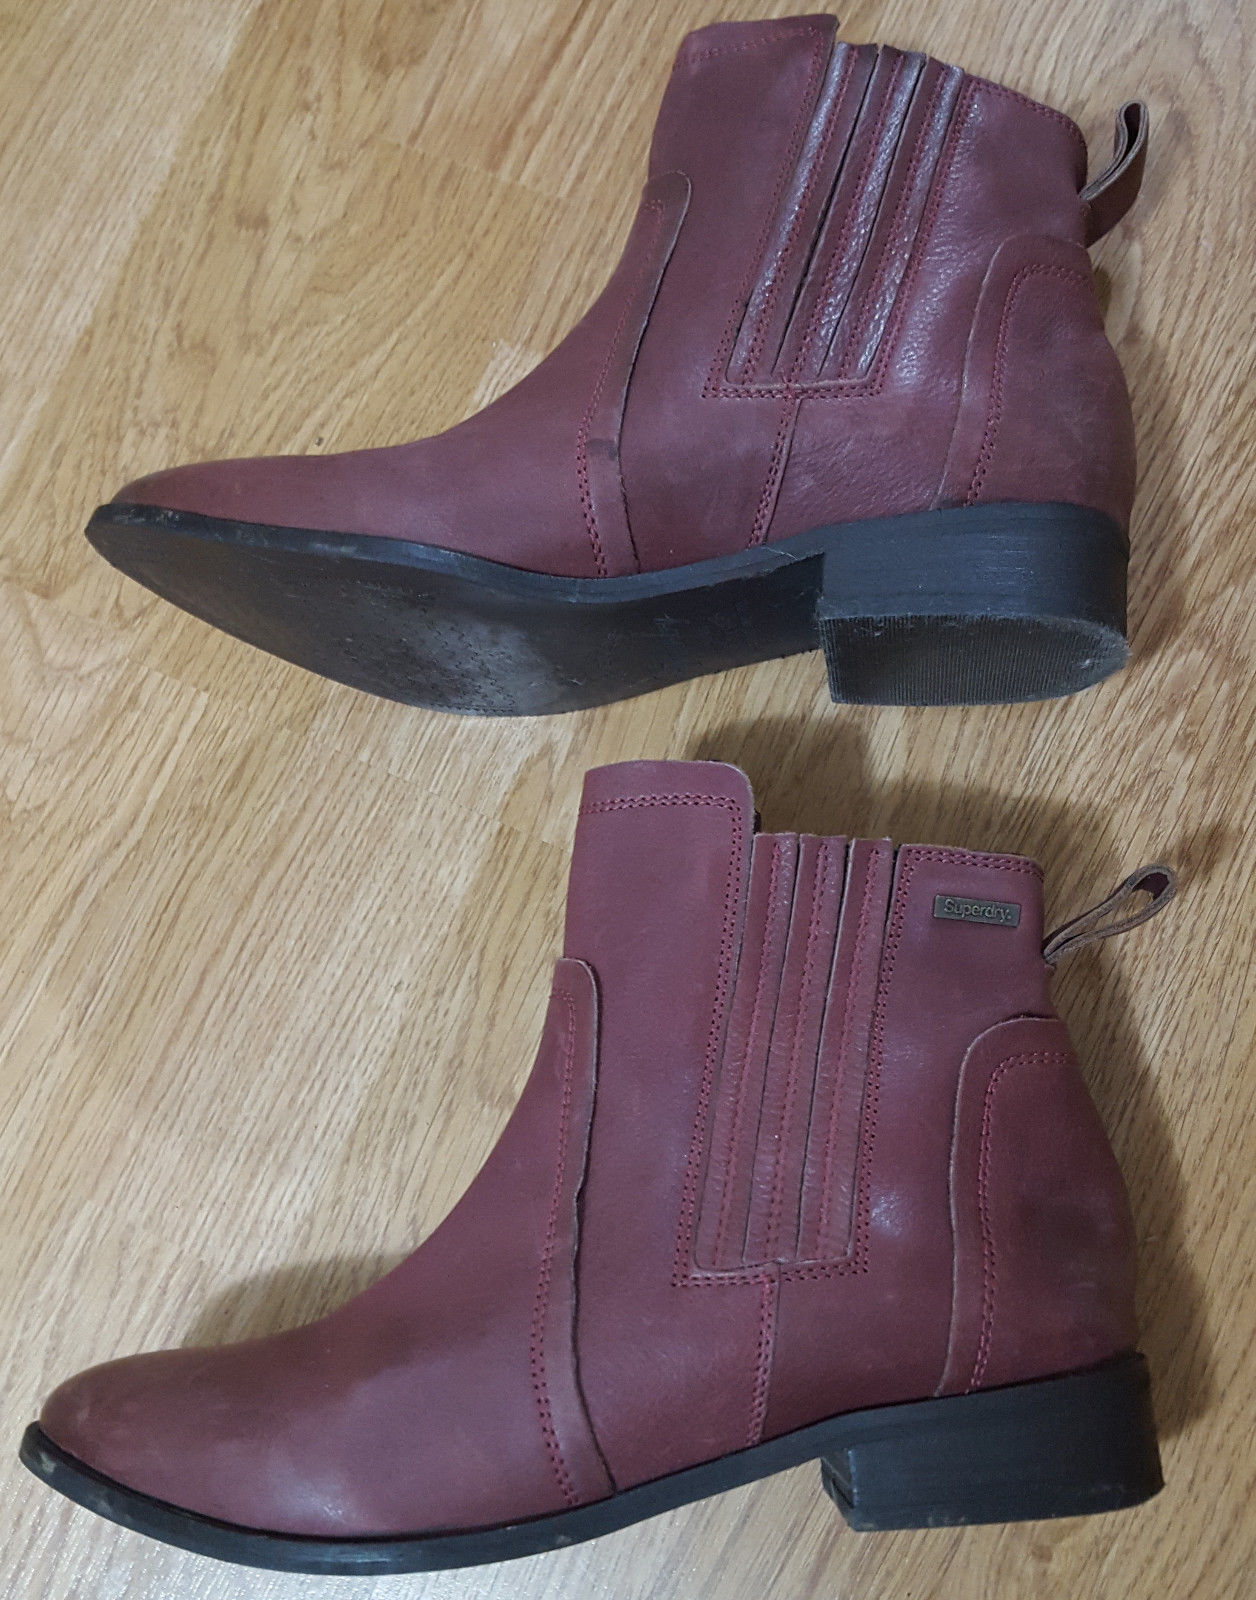 Superdry Superdry Superdry Margot Leather Ankle Boots Elasticated Pull On Maroon Red shoes UK 6 3ca967